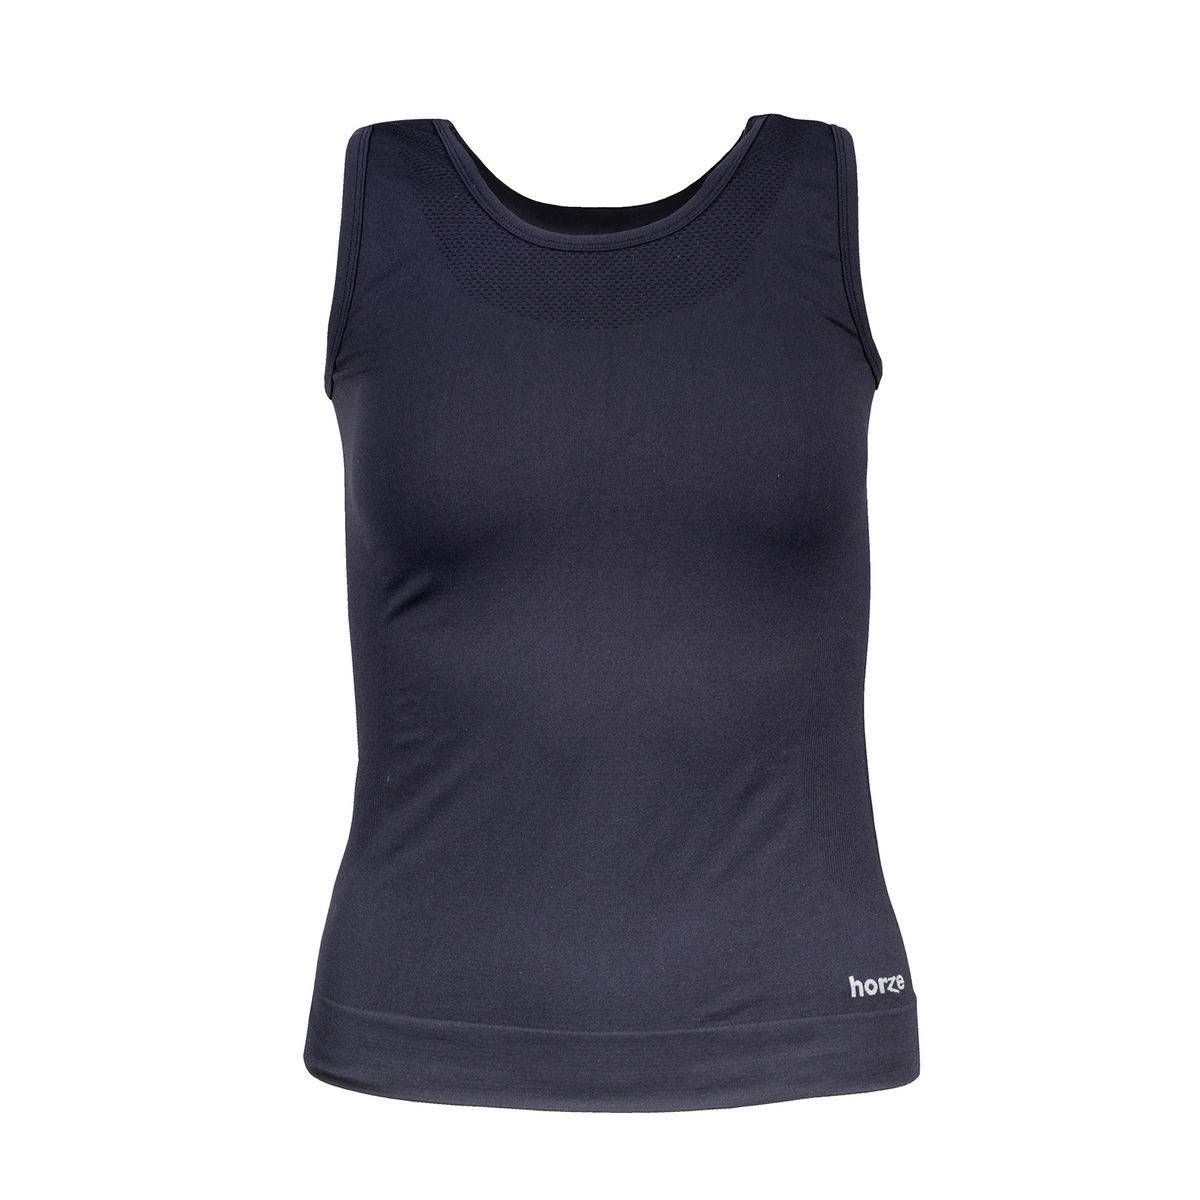 Horze Seamless Tank Top - Ladies